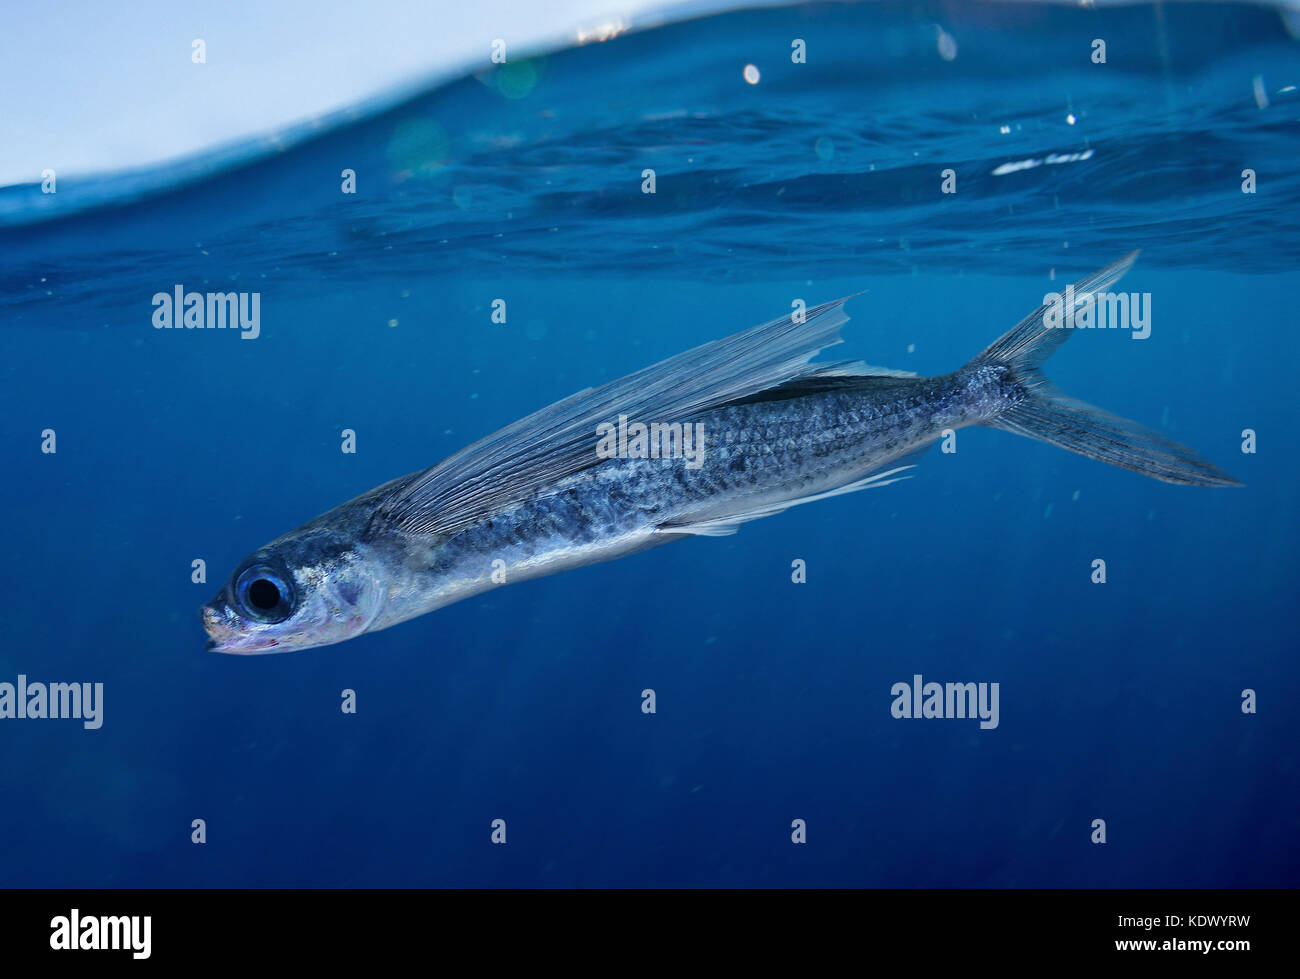 Oceanic two-wing flying fish, Exocoetus obtusirostris. Swimming close to the surface. This is a pelagic, oceanodromous Stock Photo